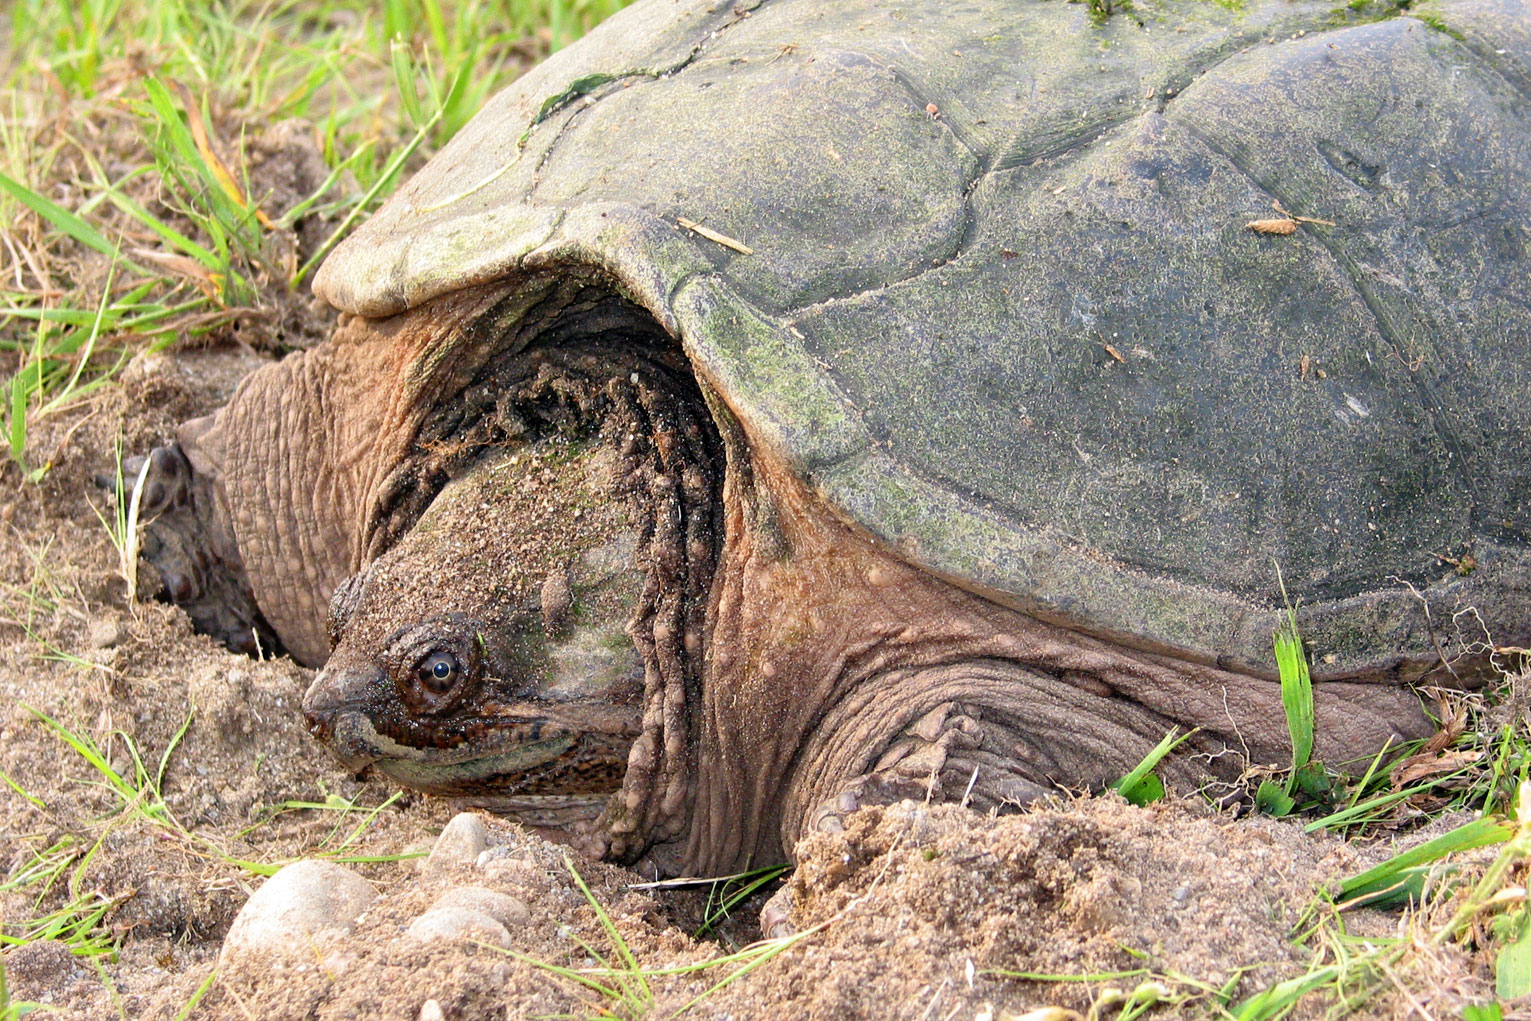 Snapping_turtle_2_md.jpg